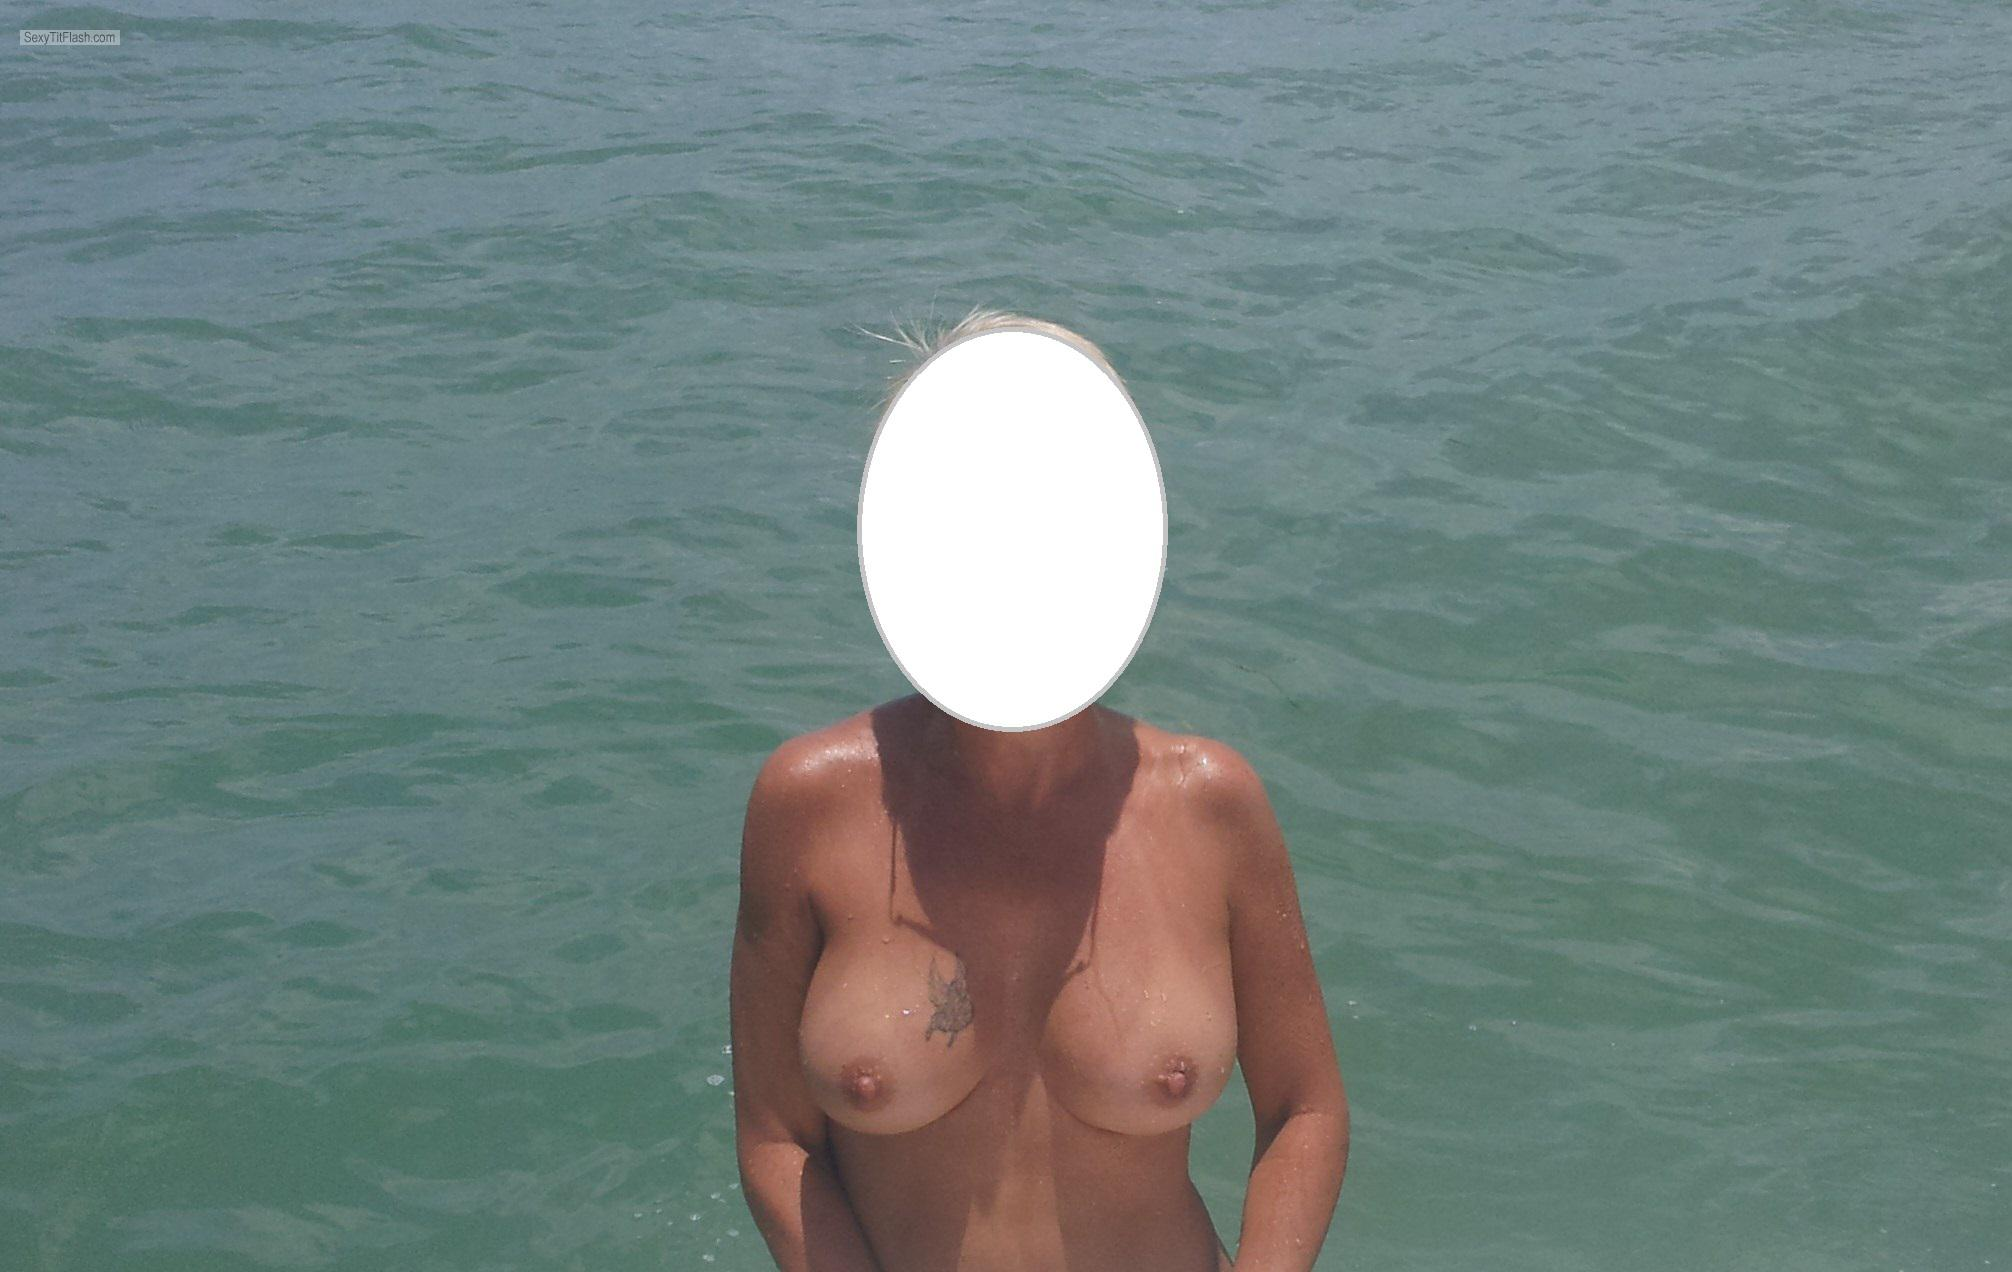 Tit Flash: Wife's Medium Tits - 24florida from United States